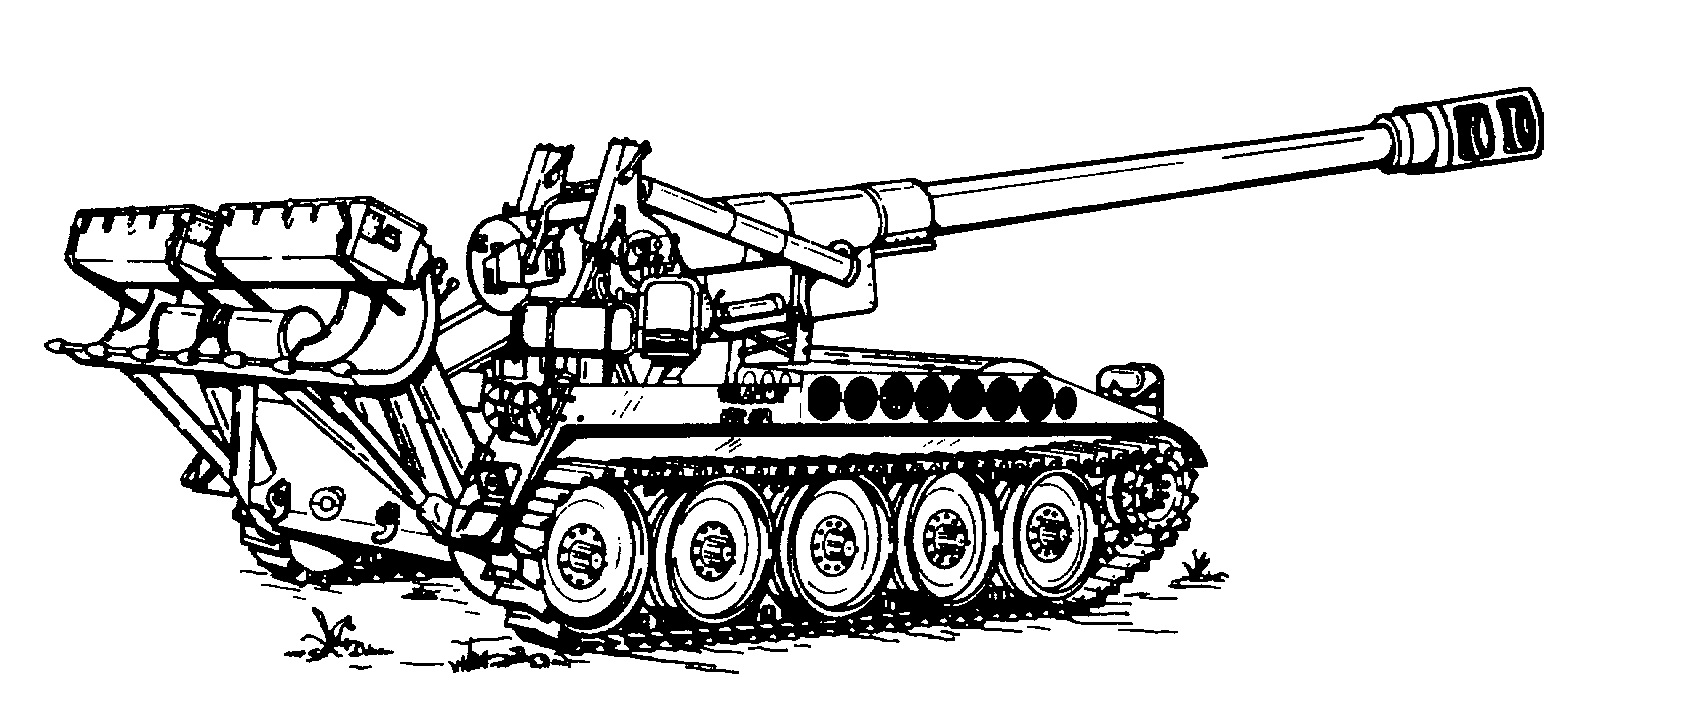 Arduino nano drawing also Ni C3 B1o Tela Vaquera Chaqueta 2758042 as well Stock Illustration Ste unk Font moreover Boeing 787 Dreamliner Logo In Vector Format as well File M110A2 8 Inch heavy self Propelled howitzer. on technical drawing